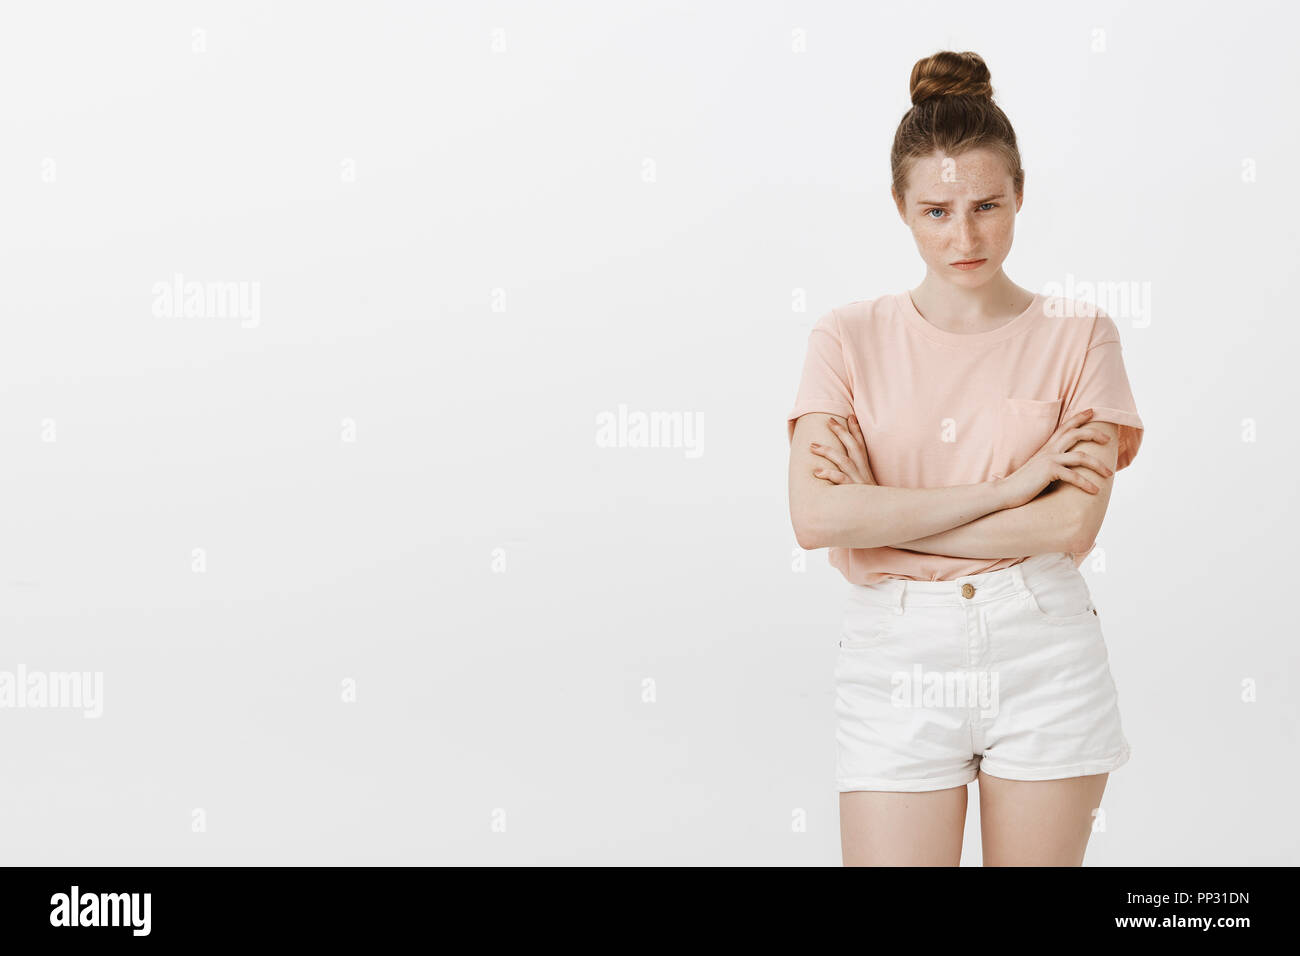 Girlfriend being suspicious, having disbelief. Portrait of intense unsure attractive woman in stylish pink t-shirt, lifting eyebrow, holding hands crossed, looking questioned at friend who telling lie - Stock Image